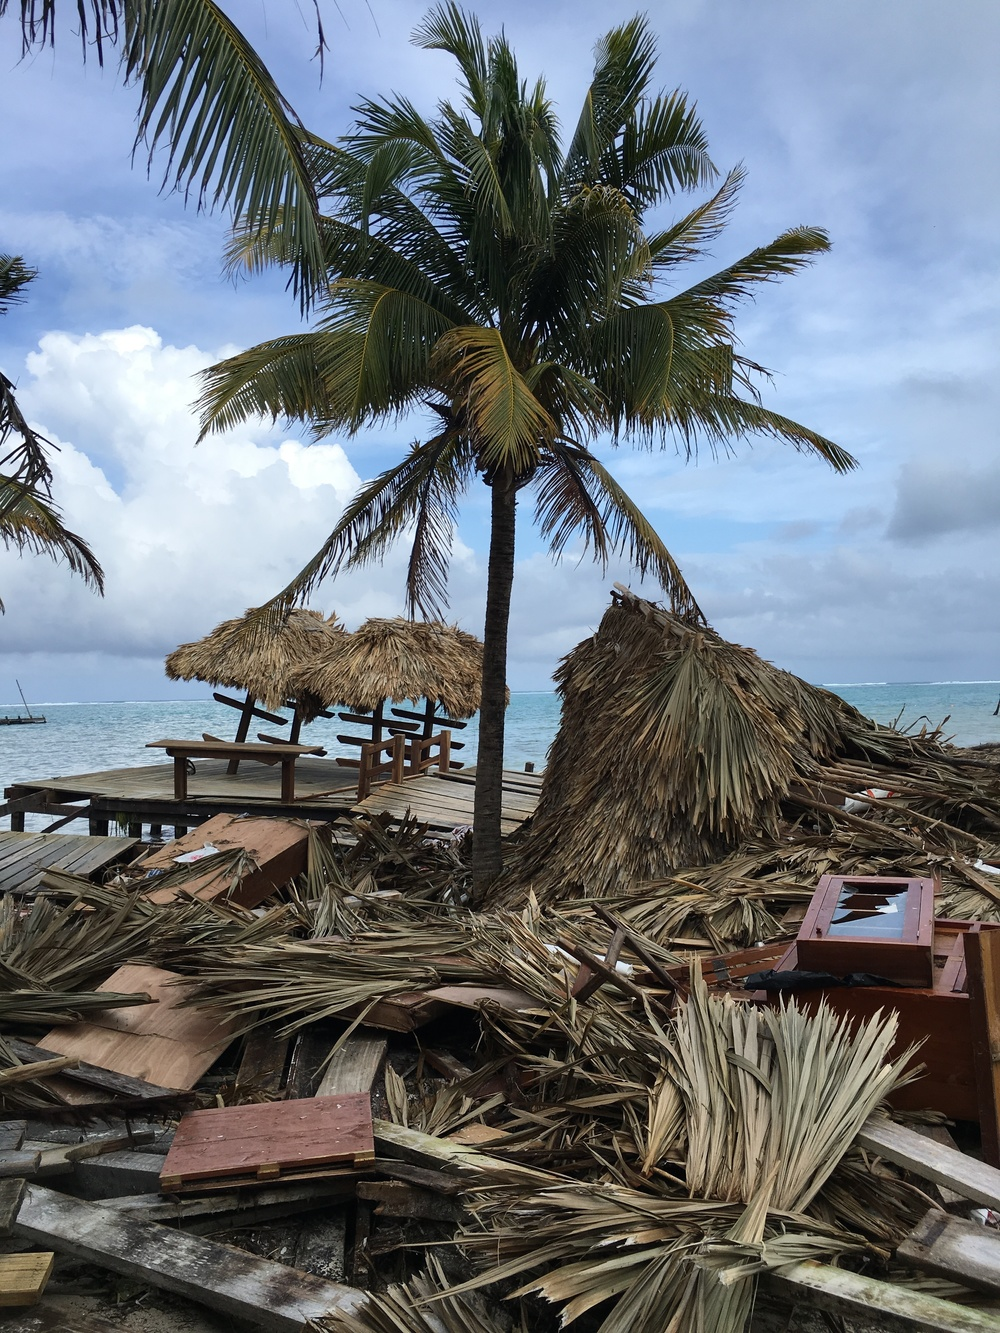 Aftermath of Hurricane Earl on Ambergris Caye